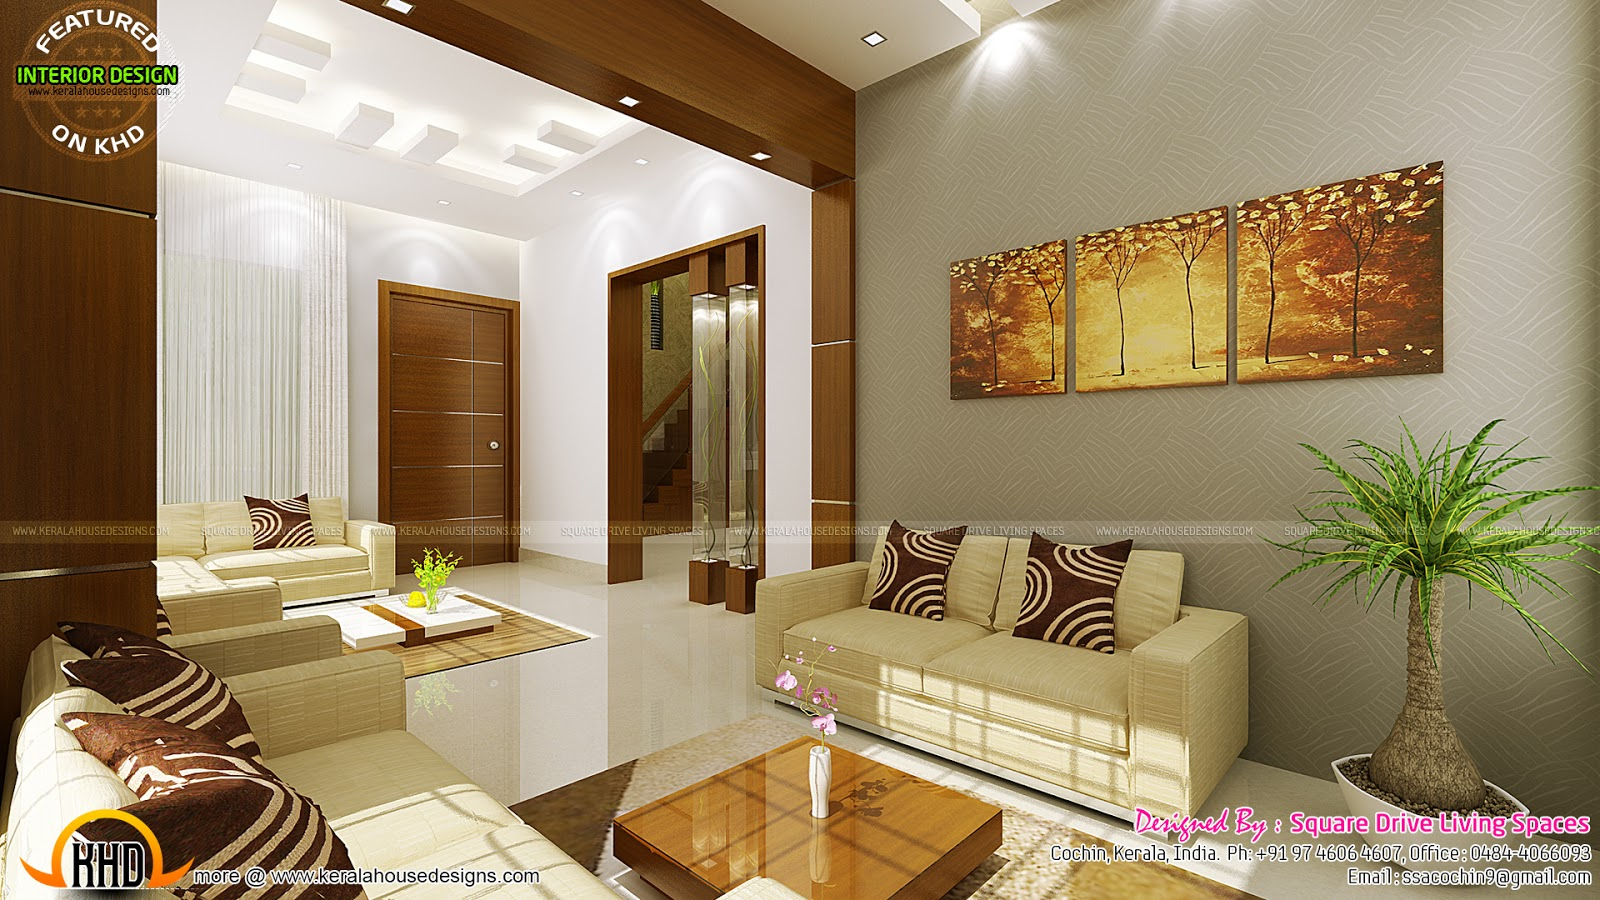 Contemporary kitchen dining and living room kerala home design and floor plans - Home design inside ...